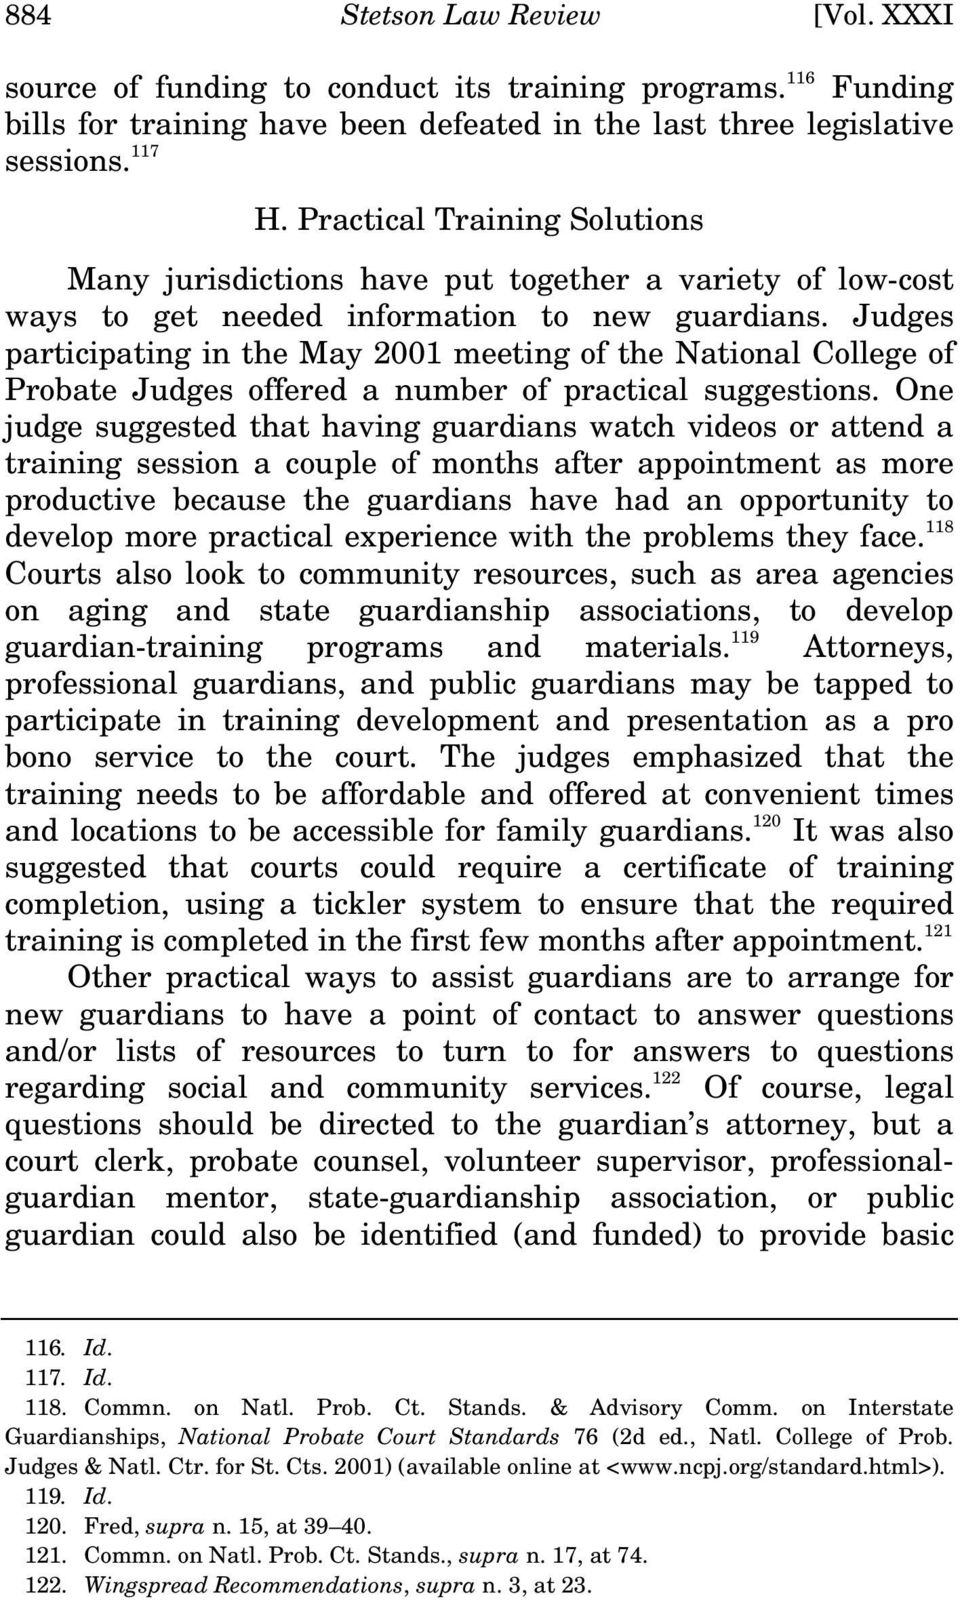 Judges participating in the May 2001 meeting of the National College of Probate Judges offered a number of practical suggestions.